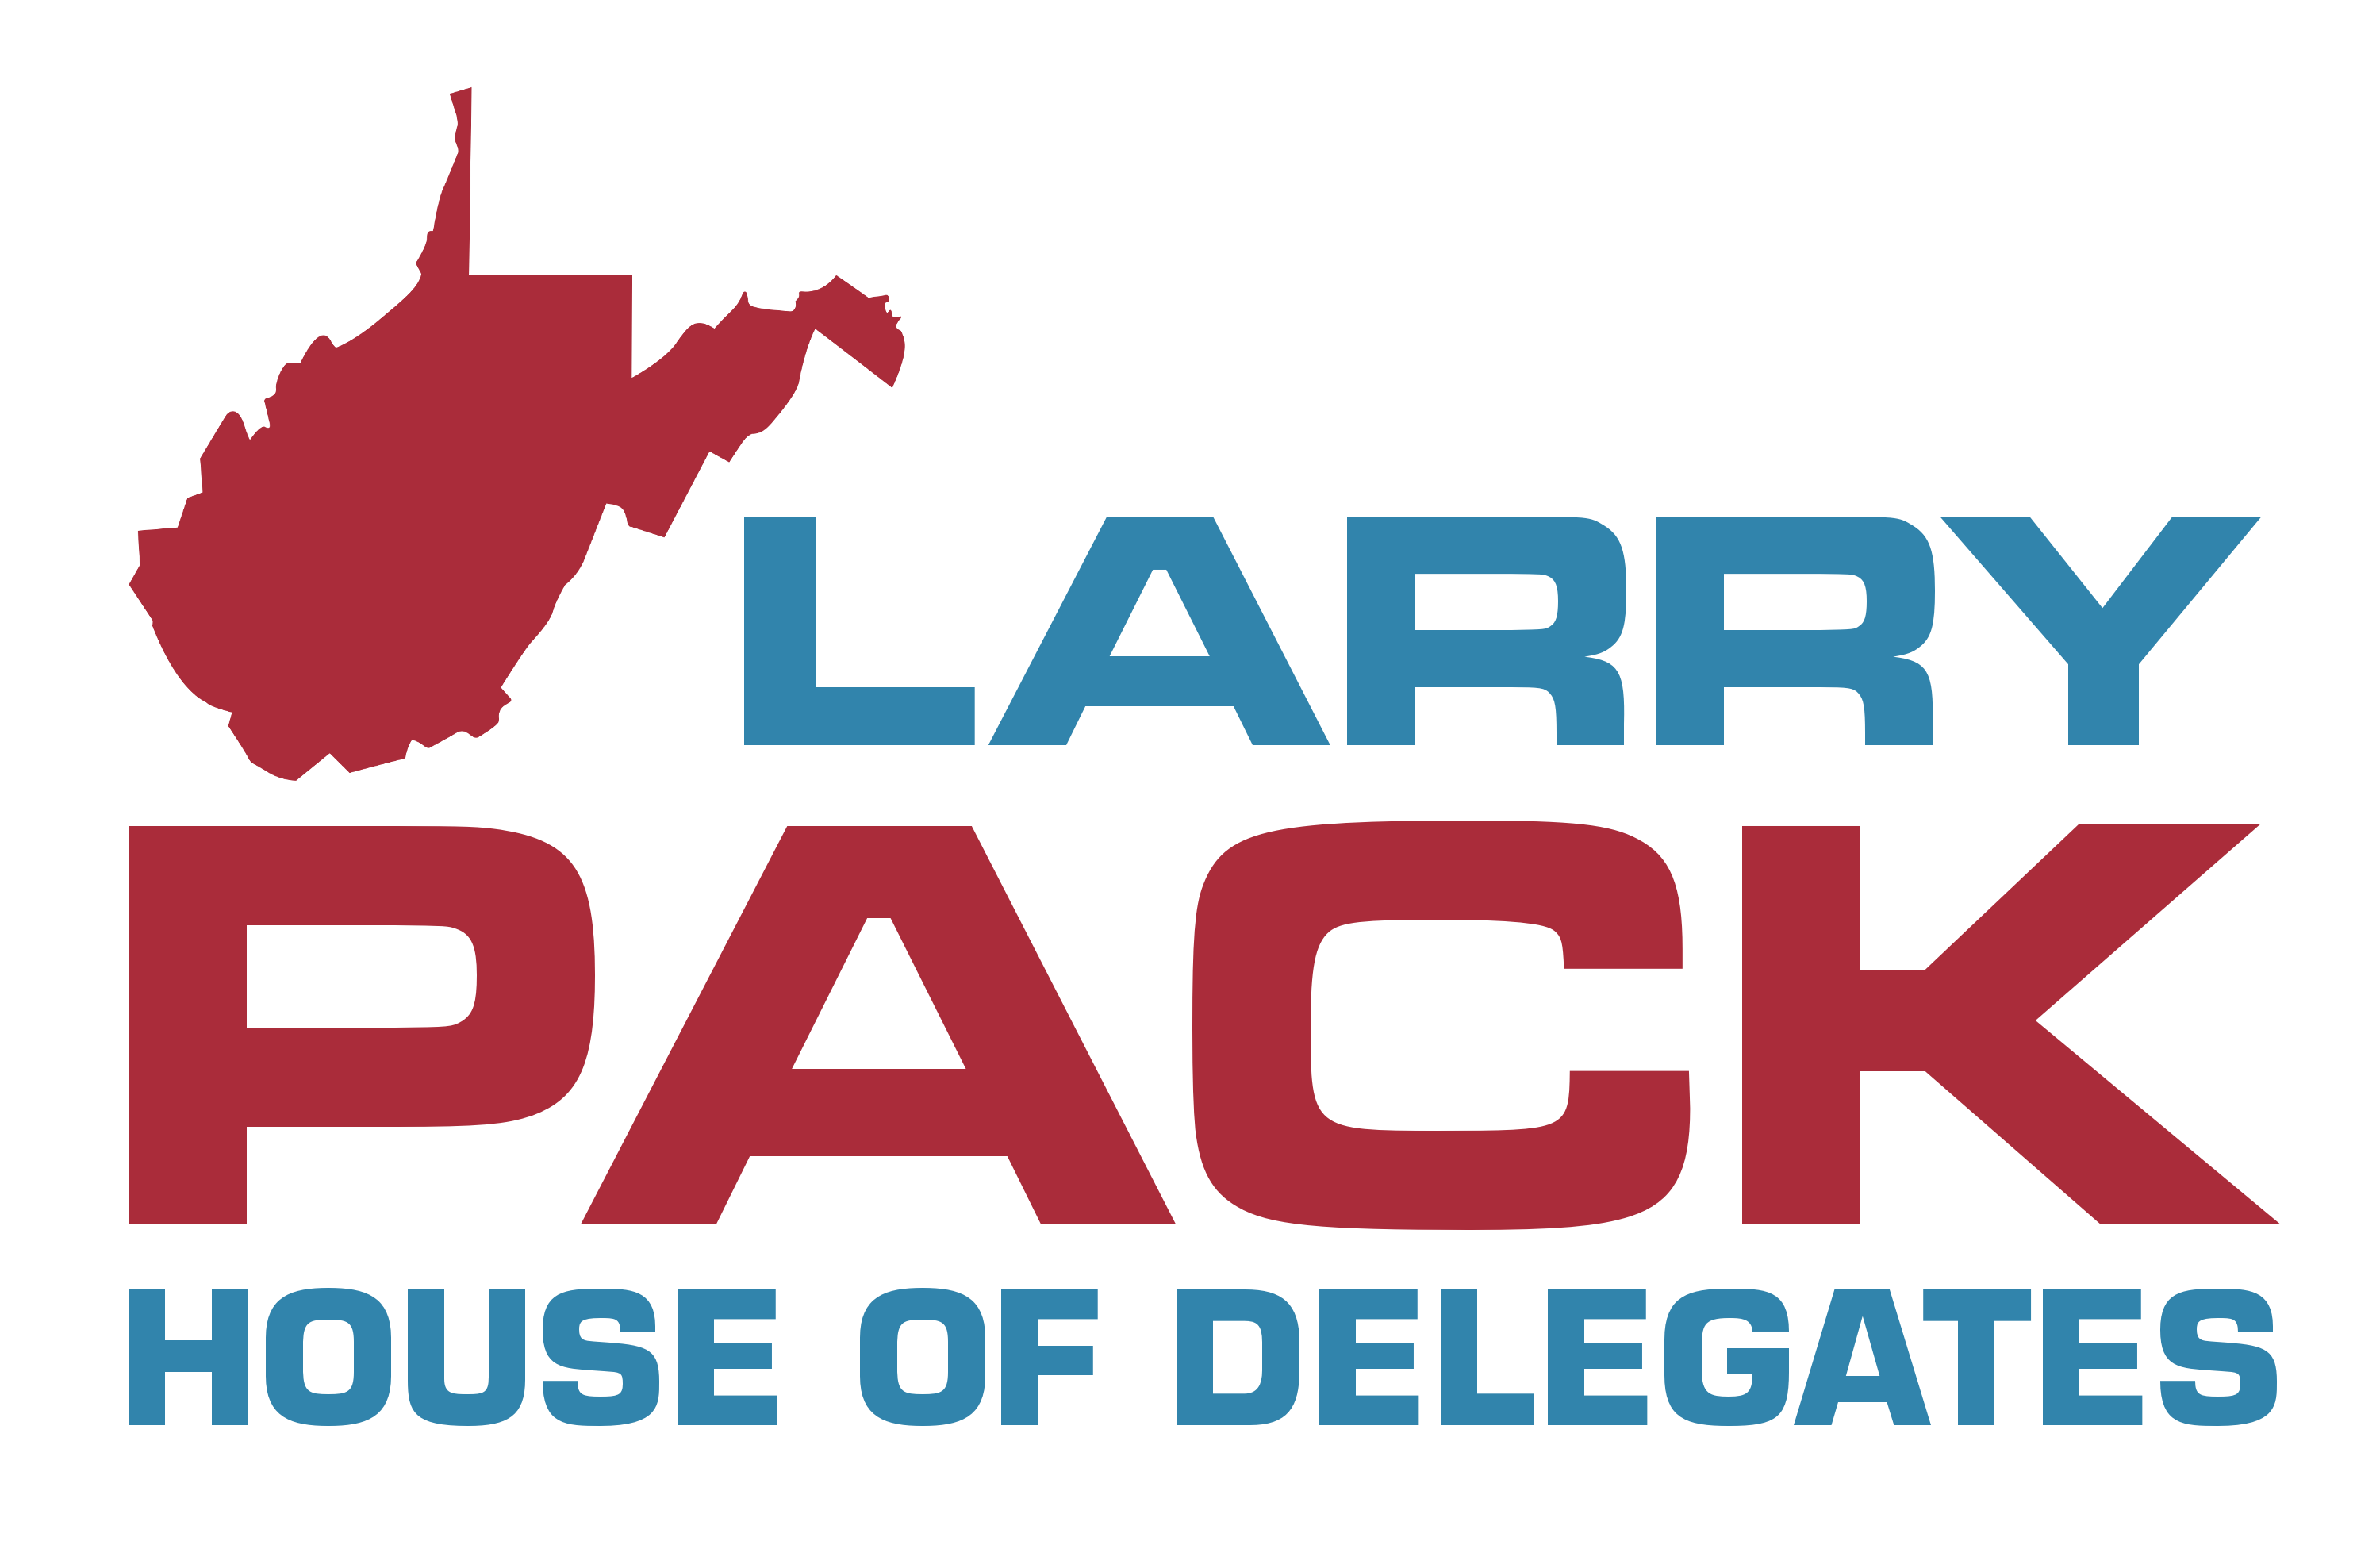 Larry Pack for West Virginia